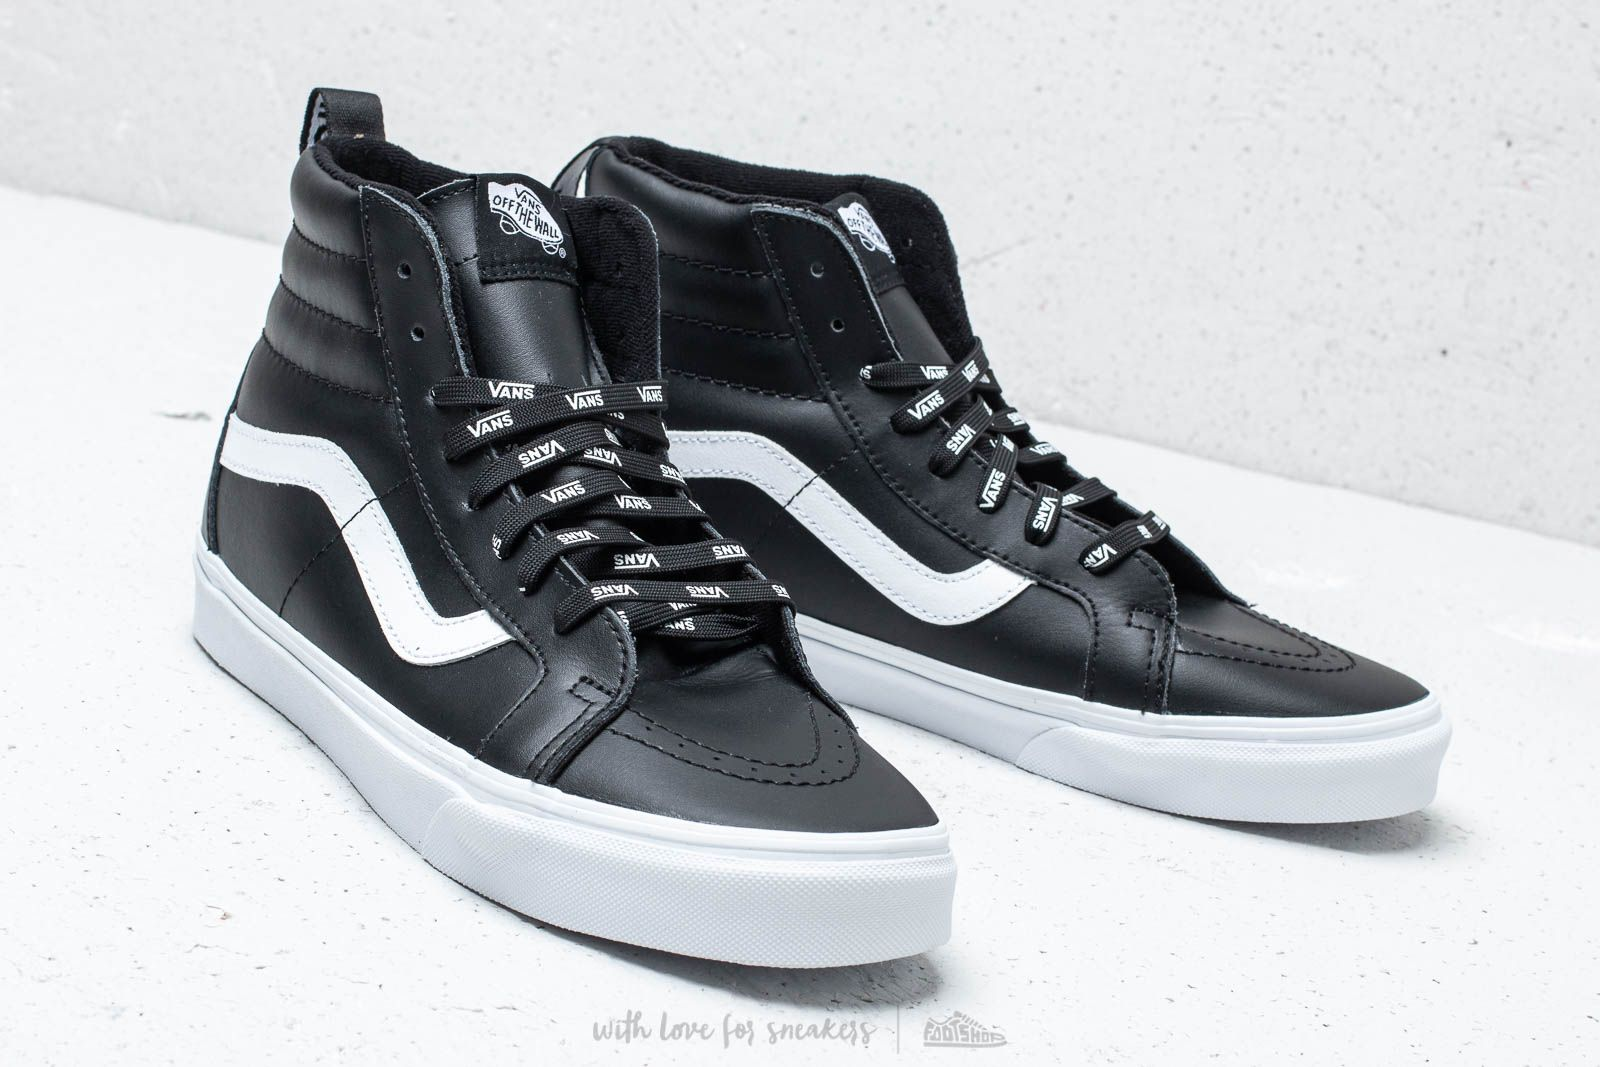 Vans SK8 Hi Reissue (otw webbing) black leather